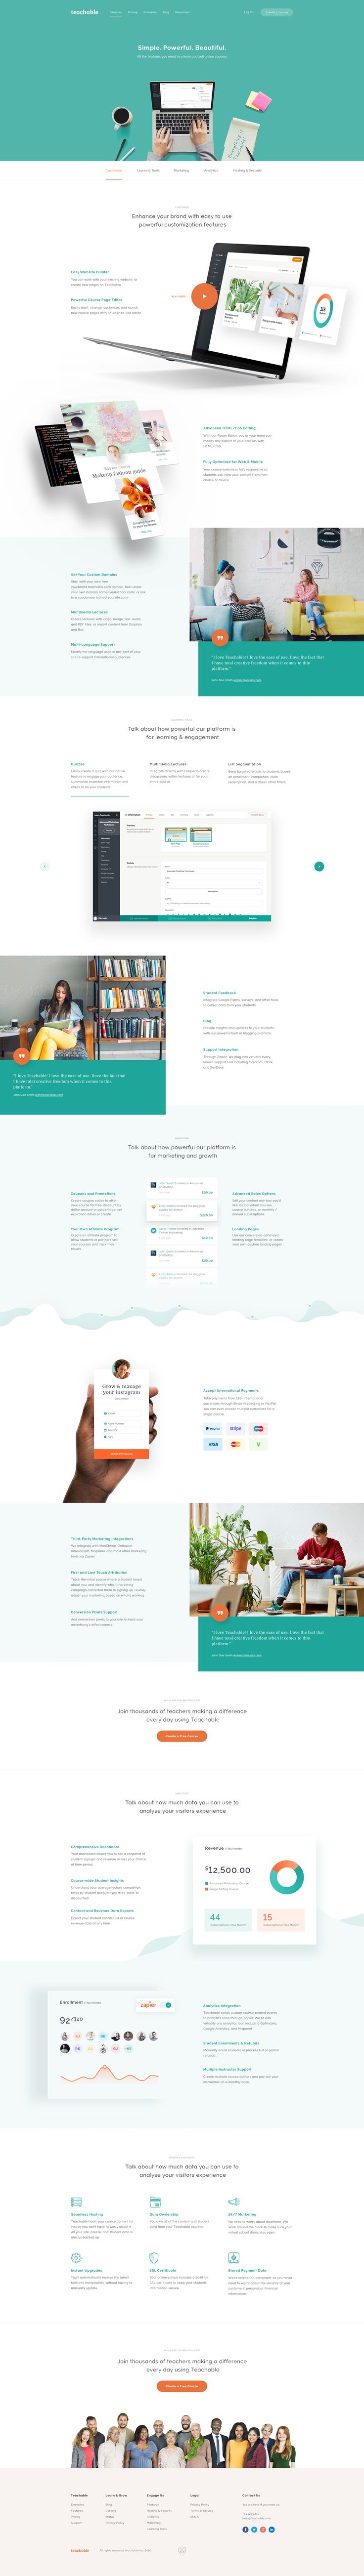 Teachable Features - Ui design concept by Balkan Brothers.